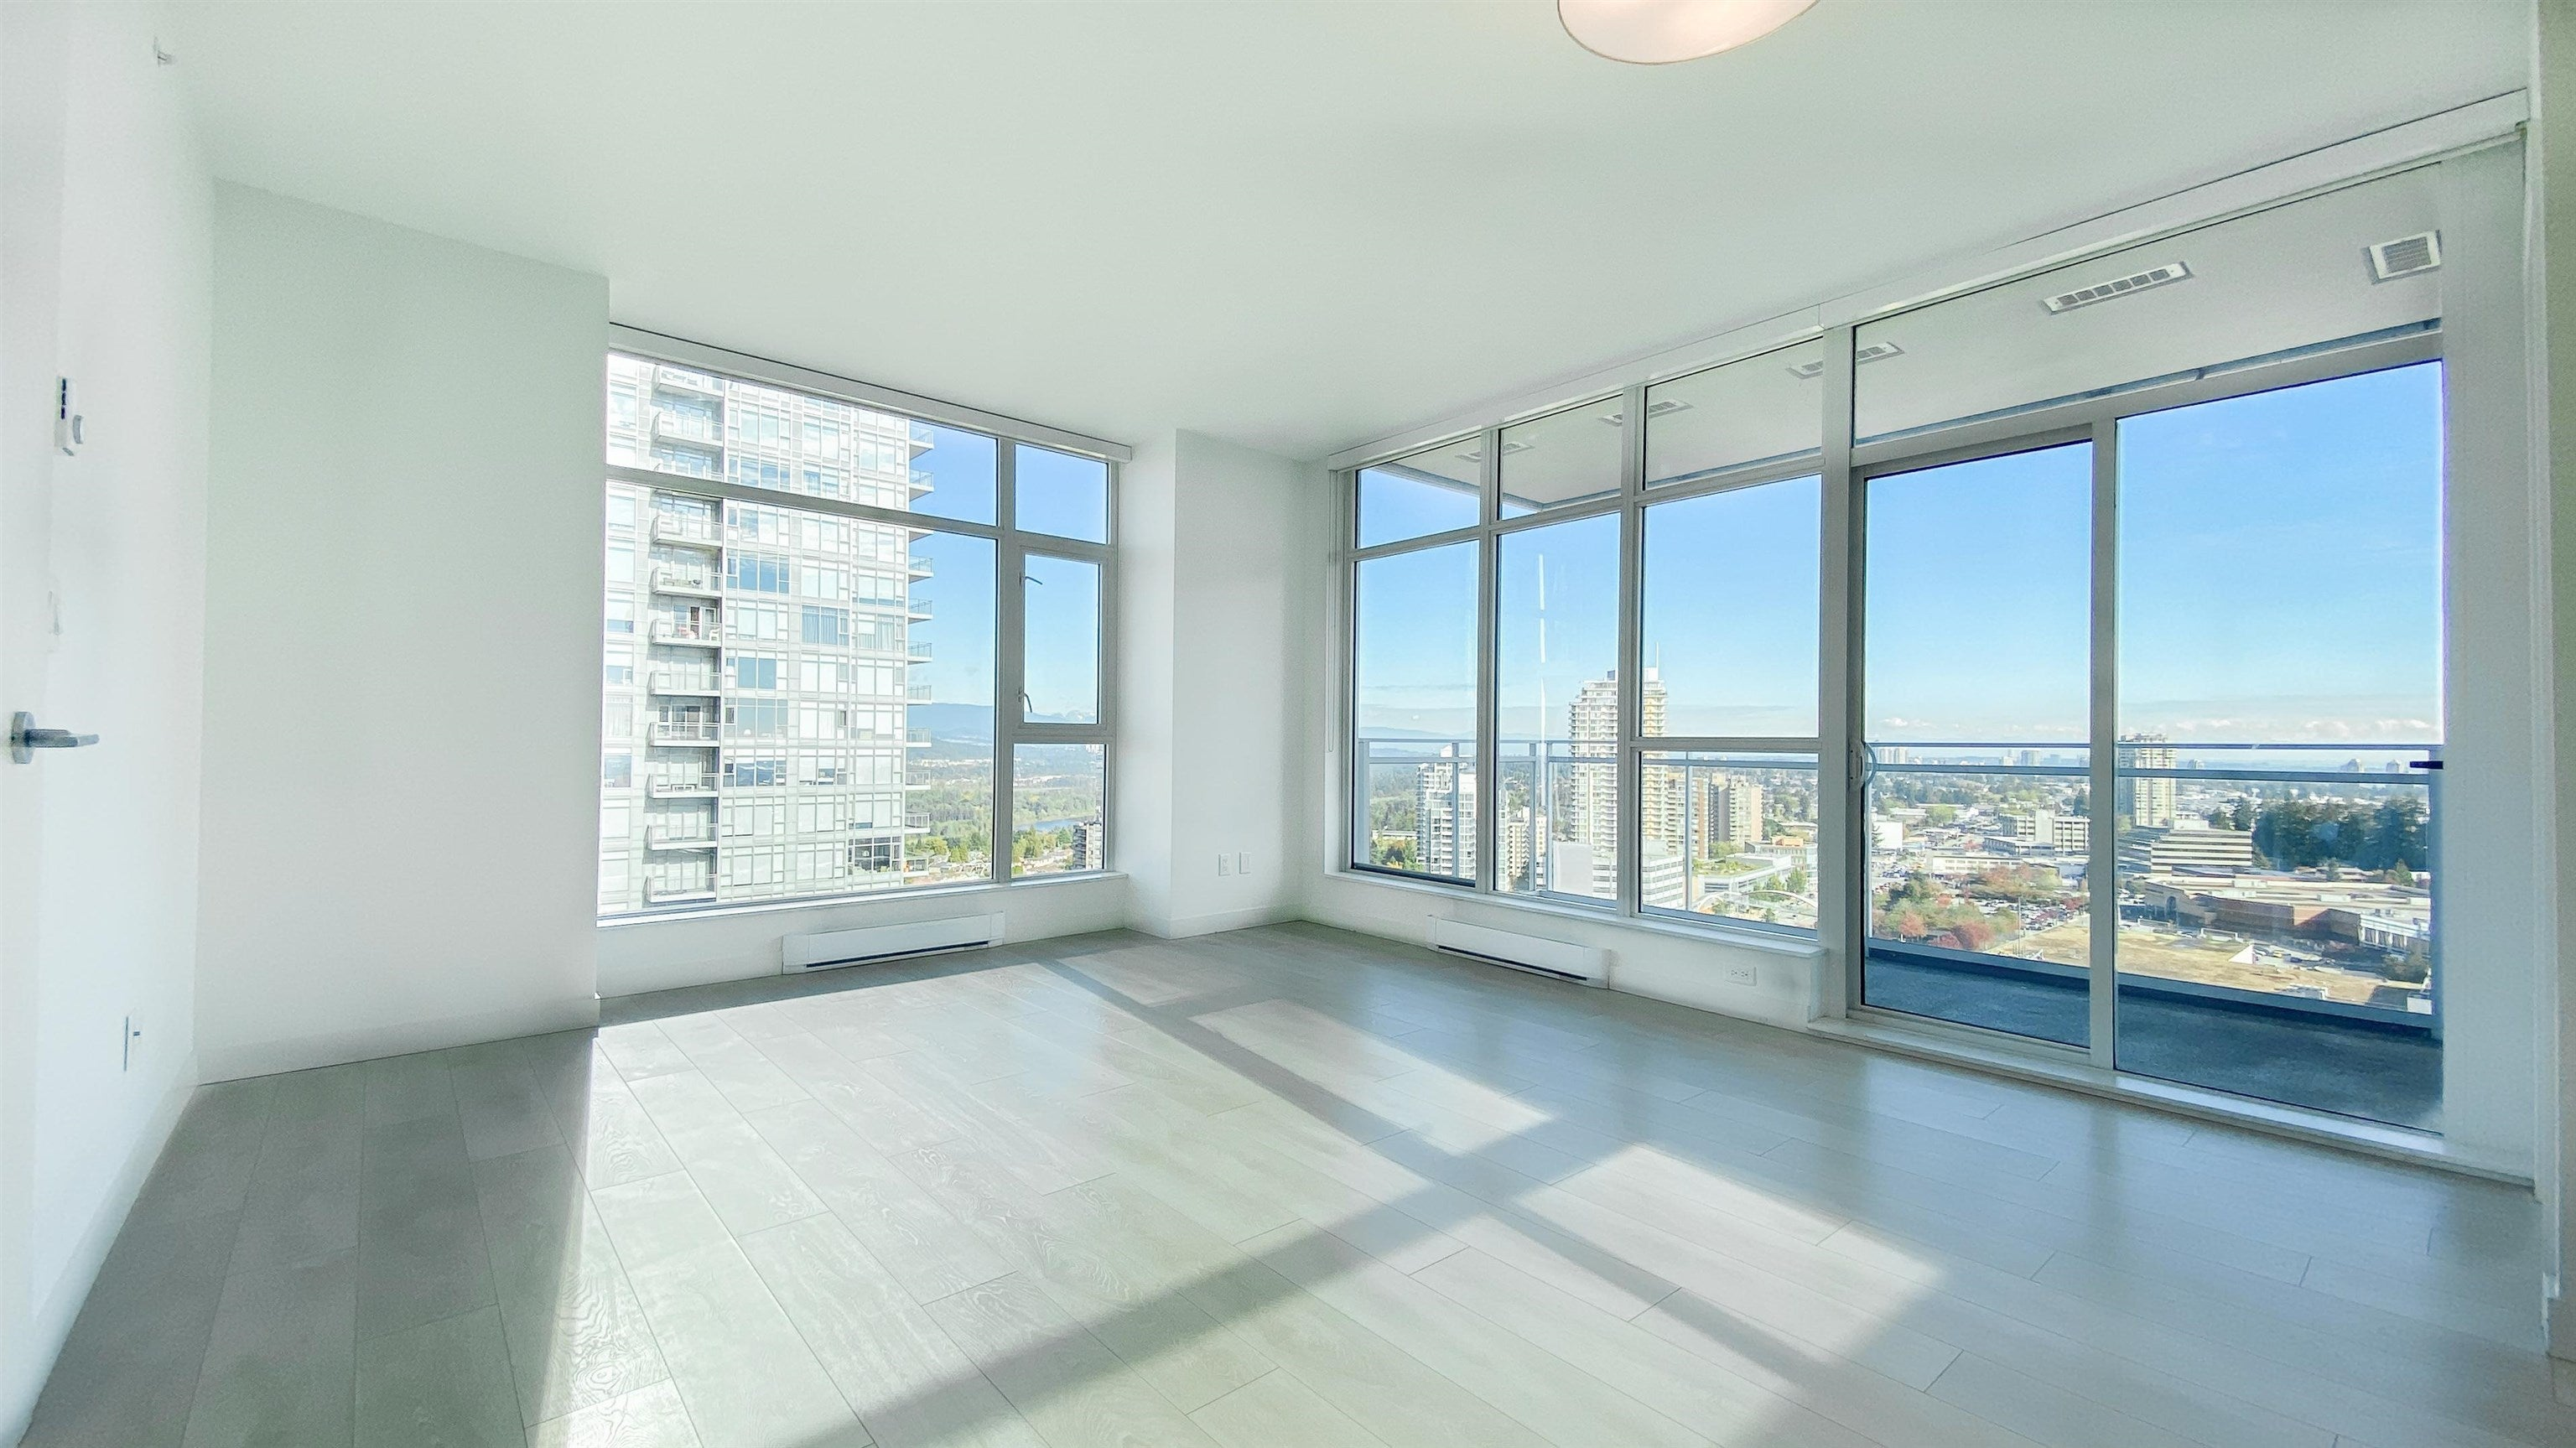 2510 4670 ASSEMBLY WAY - Metrotown Apartment/Condo for sale, 2 Bedrooms (R2625732) - #4